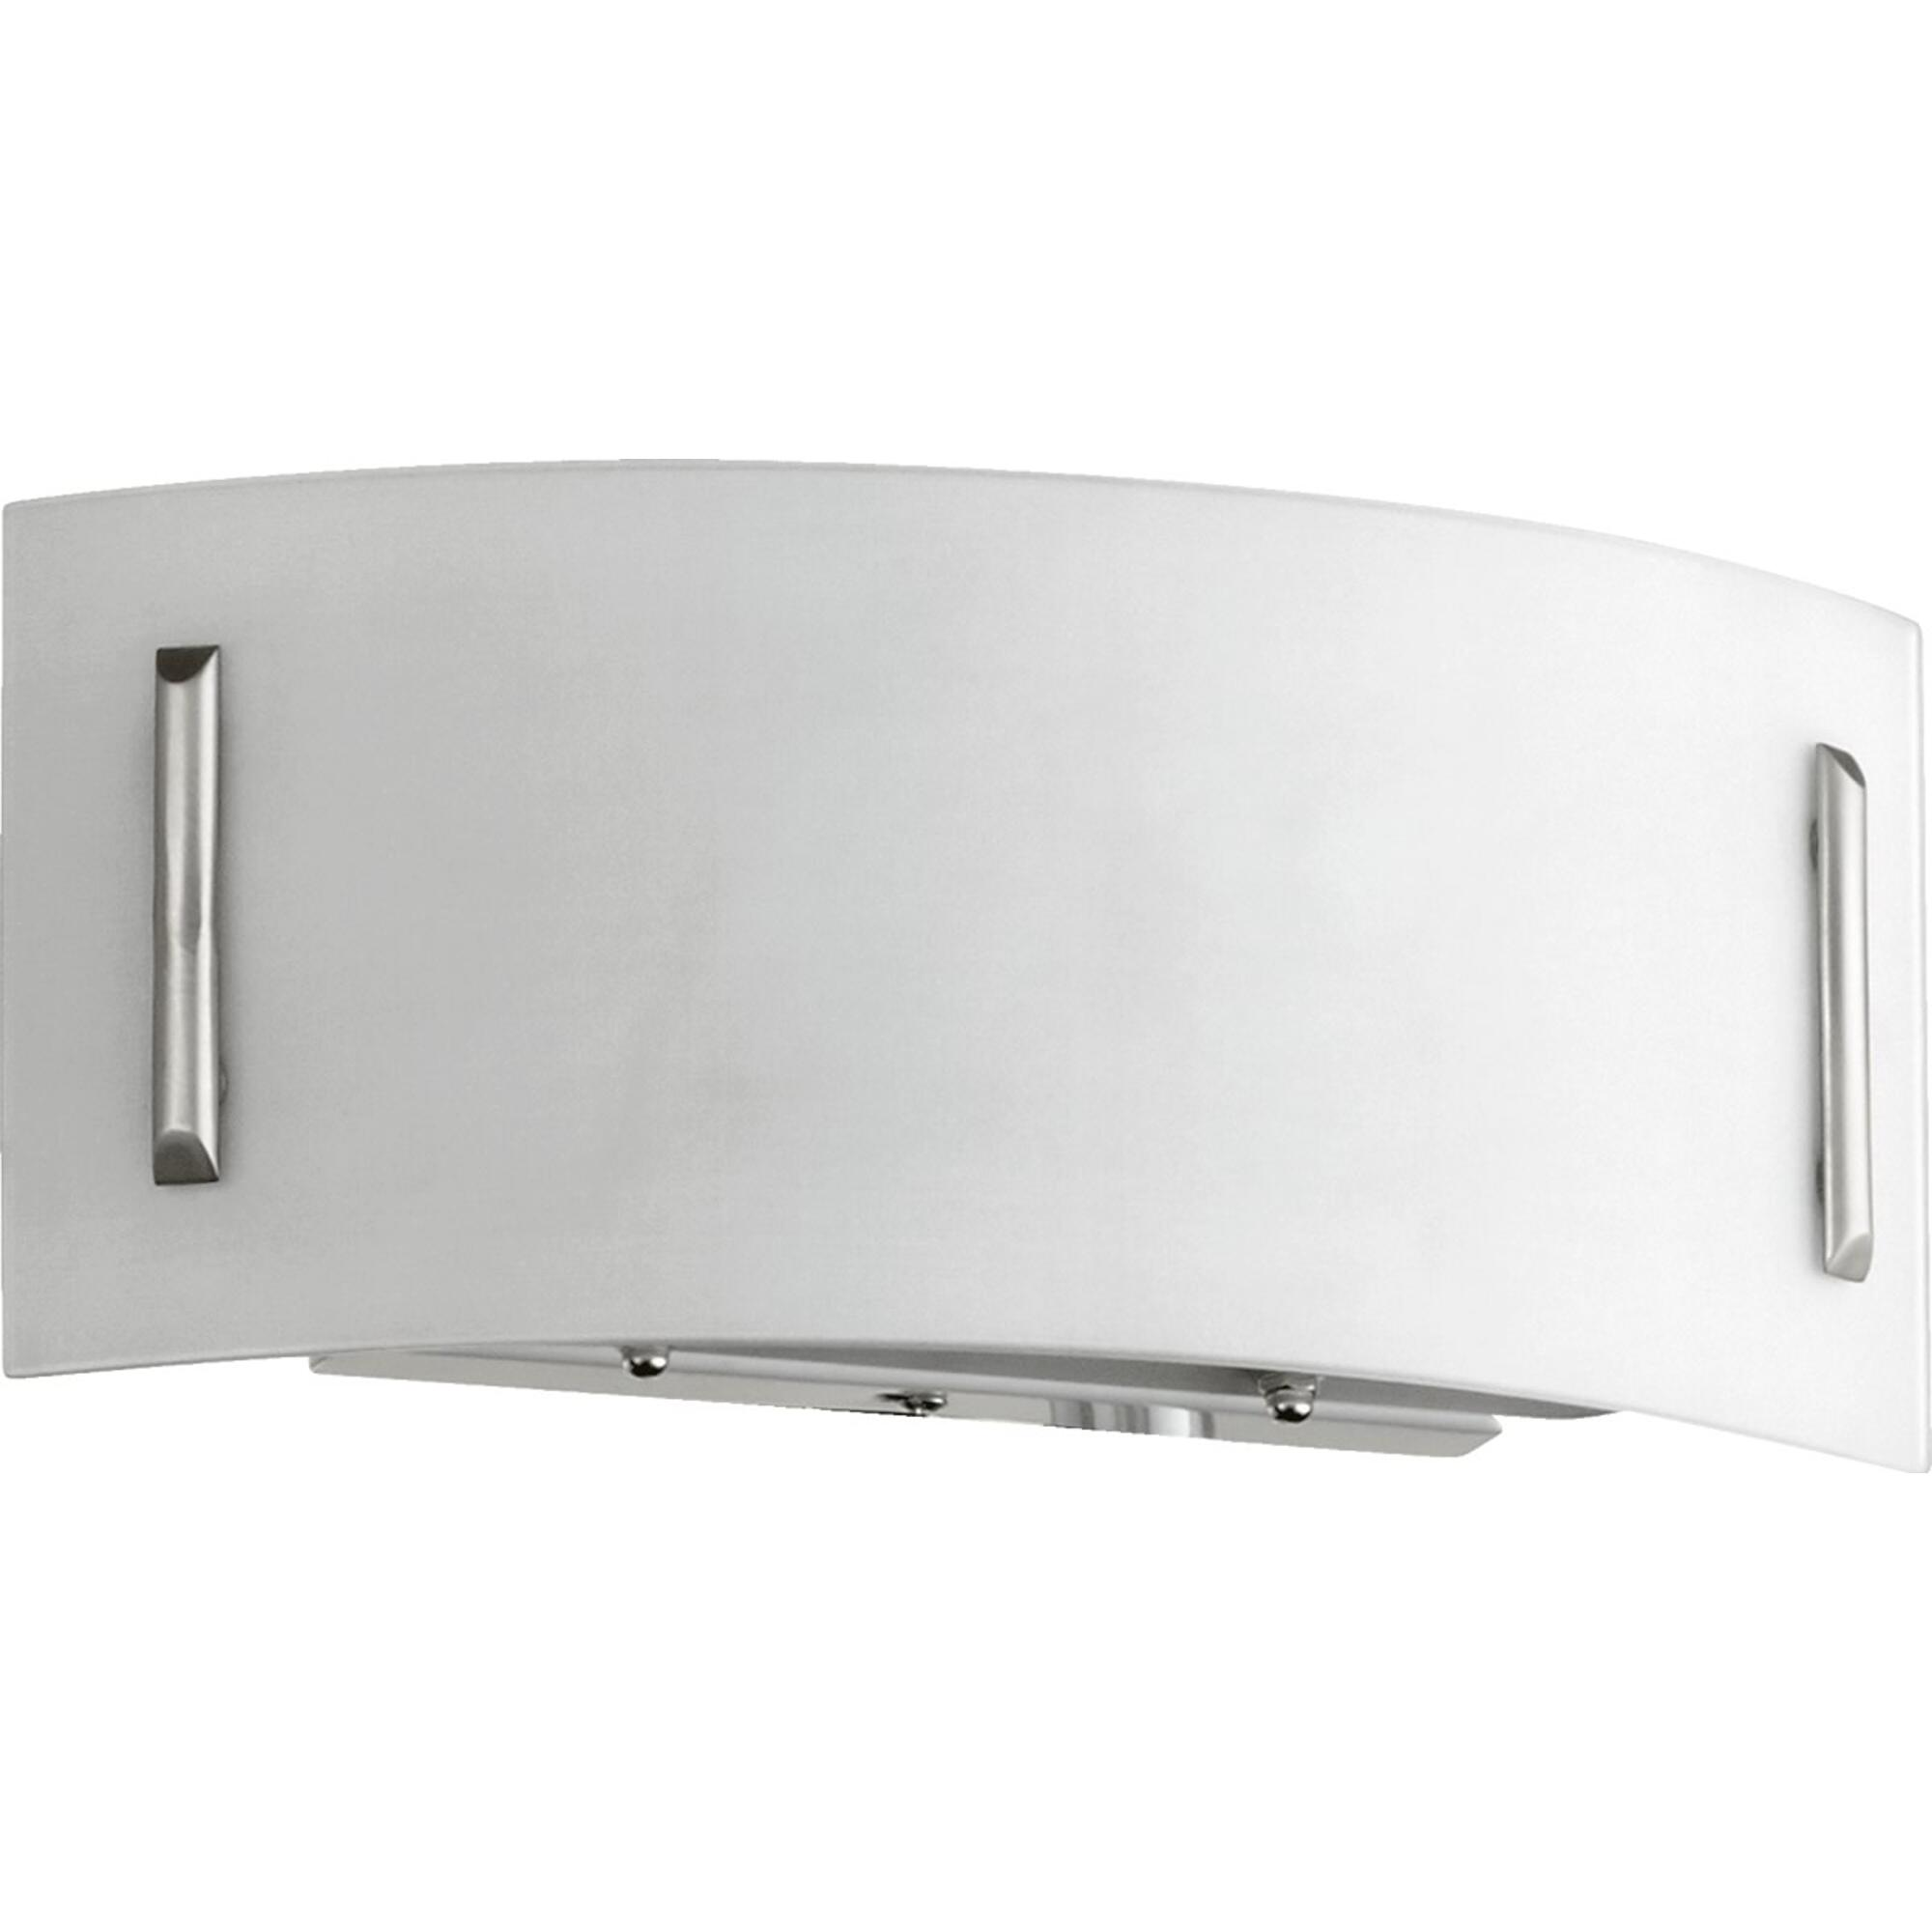 1-Light Wall Sconce Satin Nickel by Quorum. Modern Design Perfect for bathroom, hallway, or covered patio